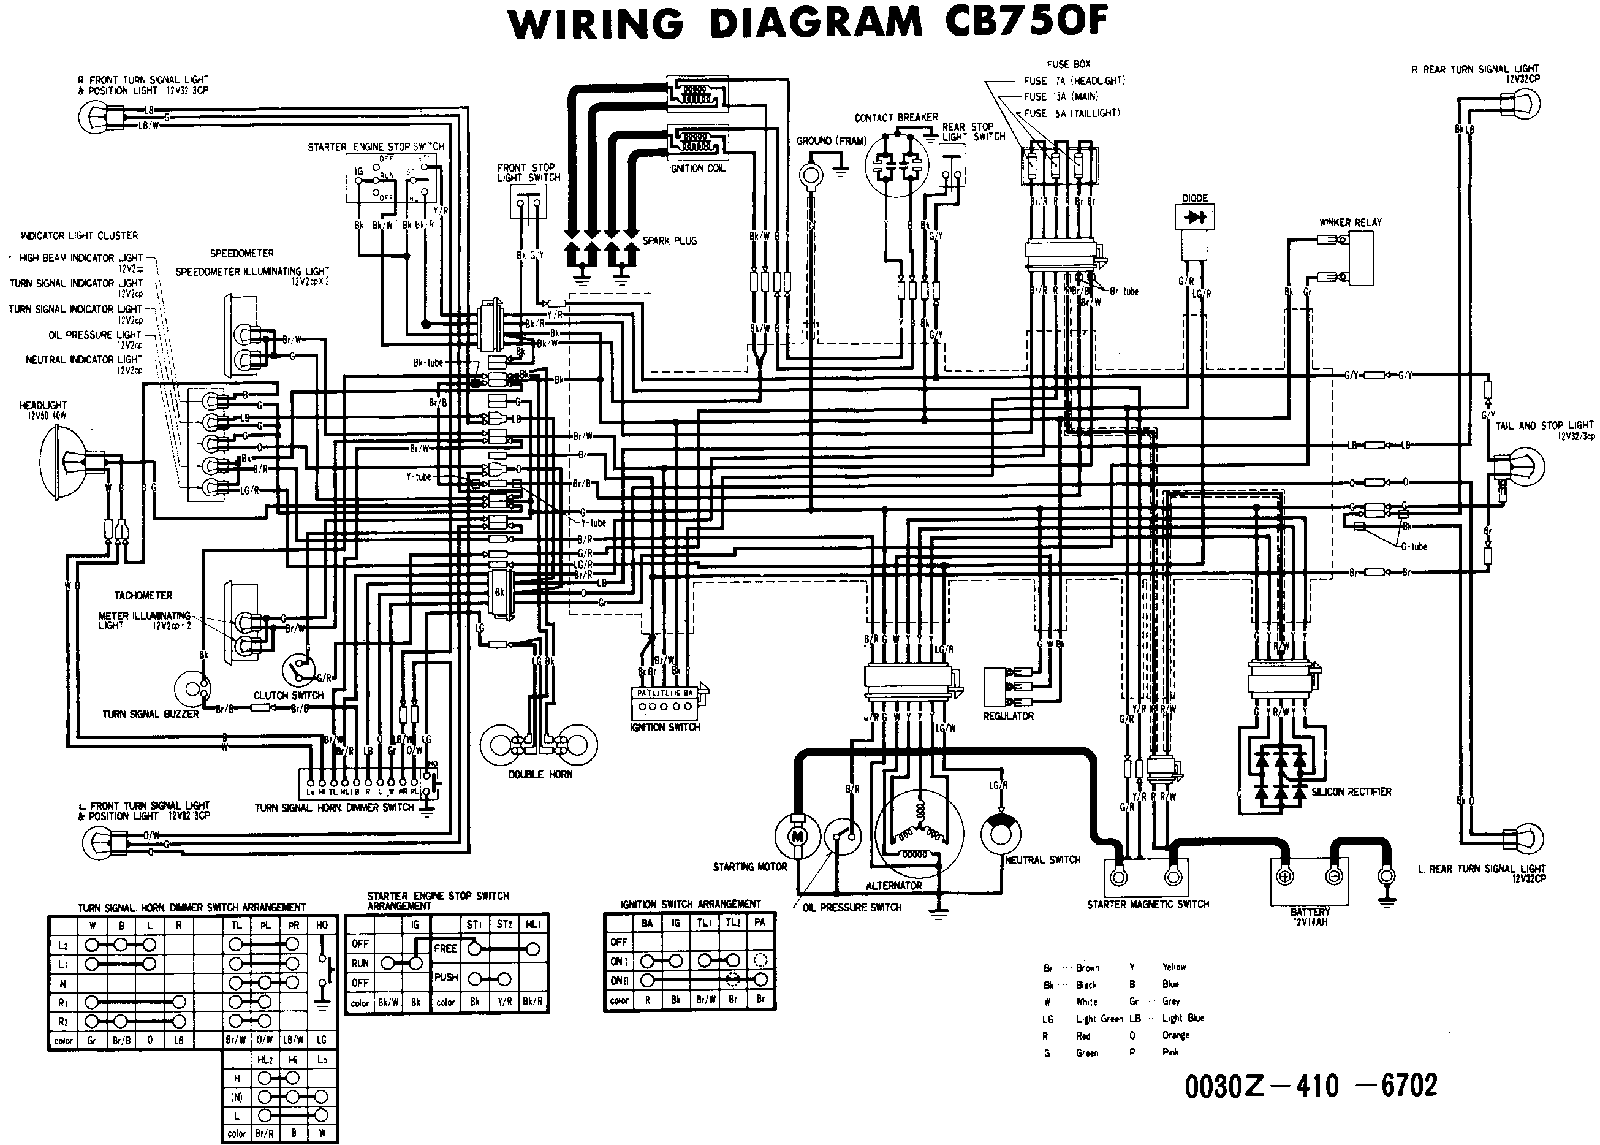 Picture 5 of 6 from Honda CB750 Wiring Diagrams